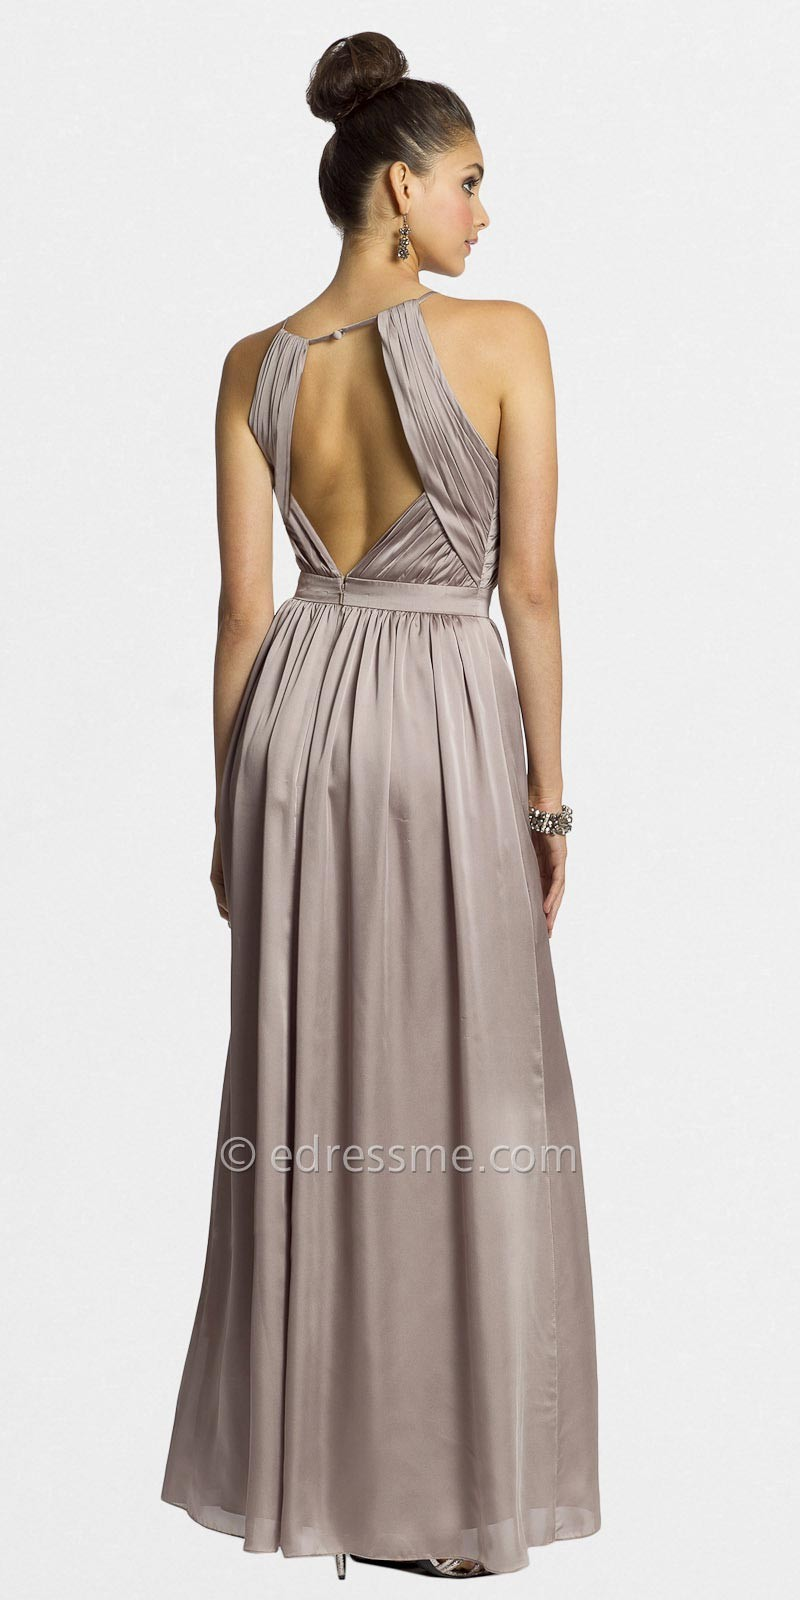 Halter dresses formal